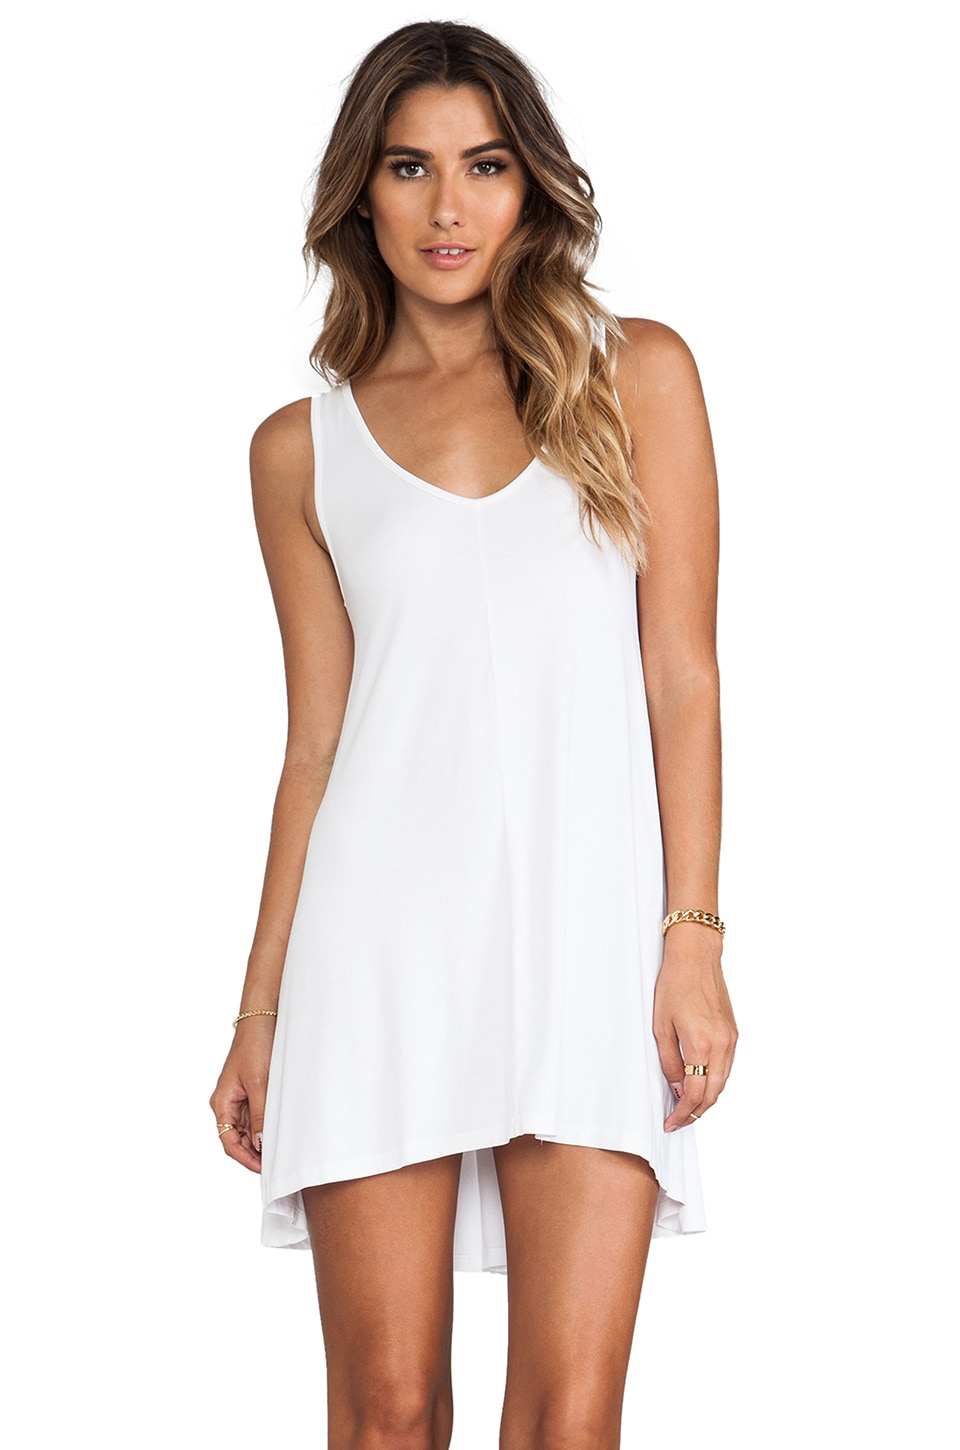 Feel the Piece Short Dress in White